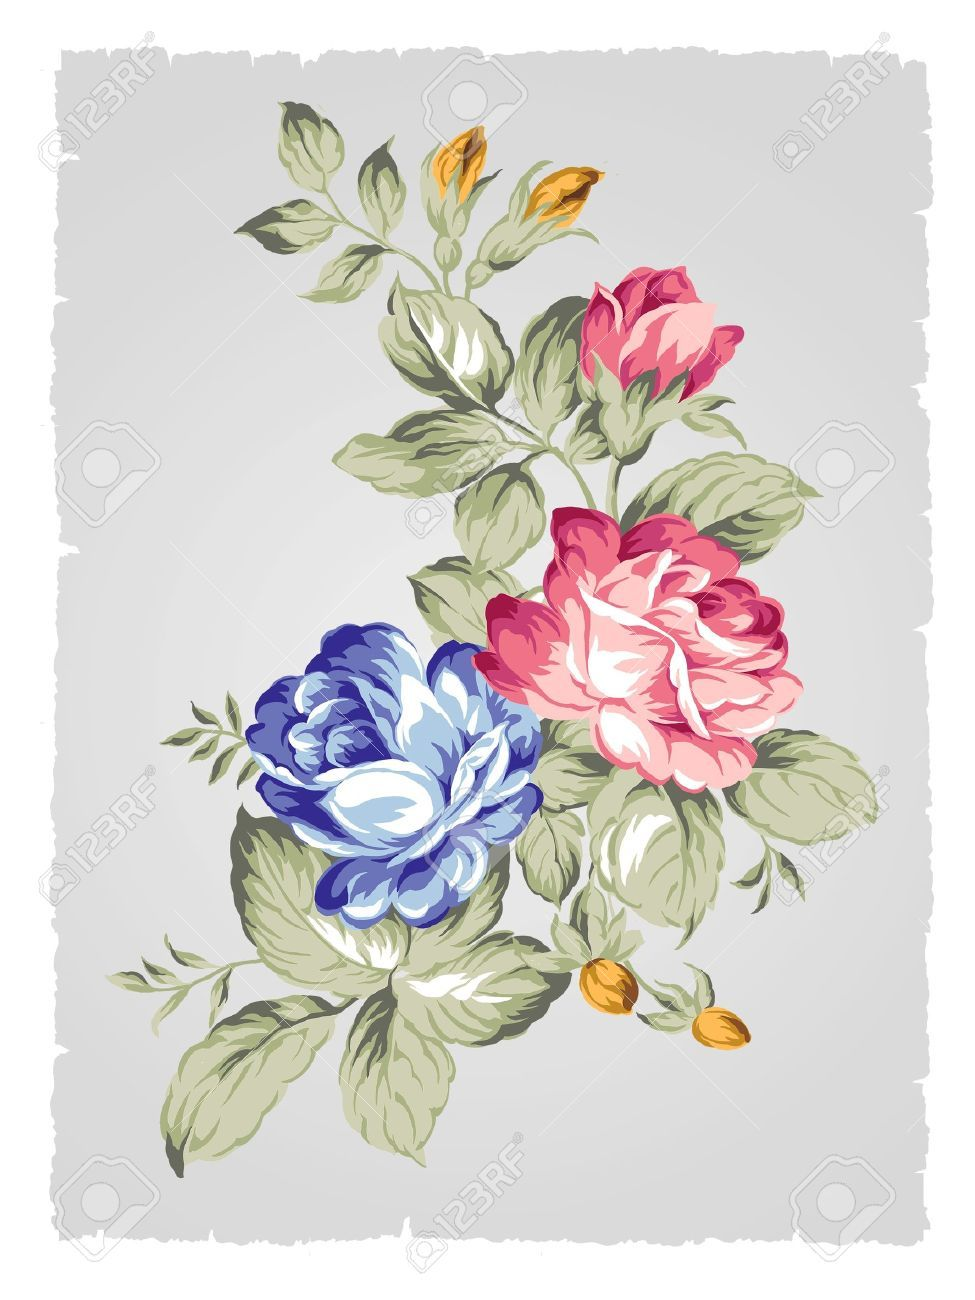 Fabric Painting Flower Patterns Bunch Google Search Flower